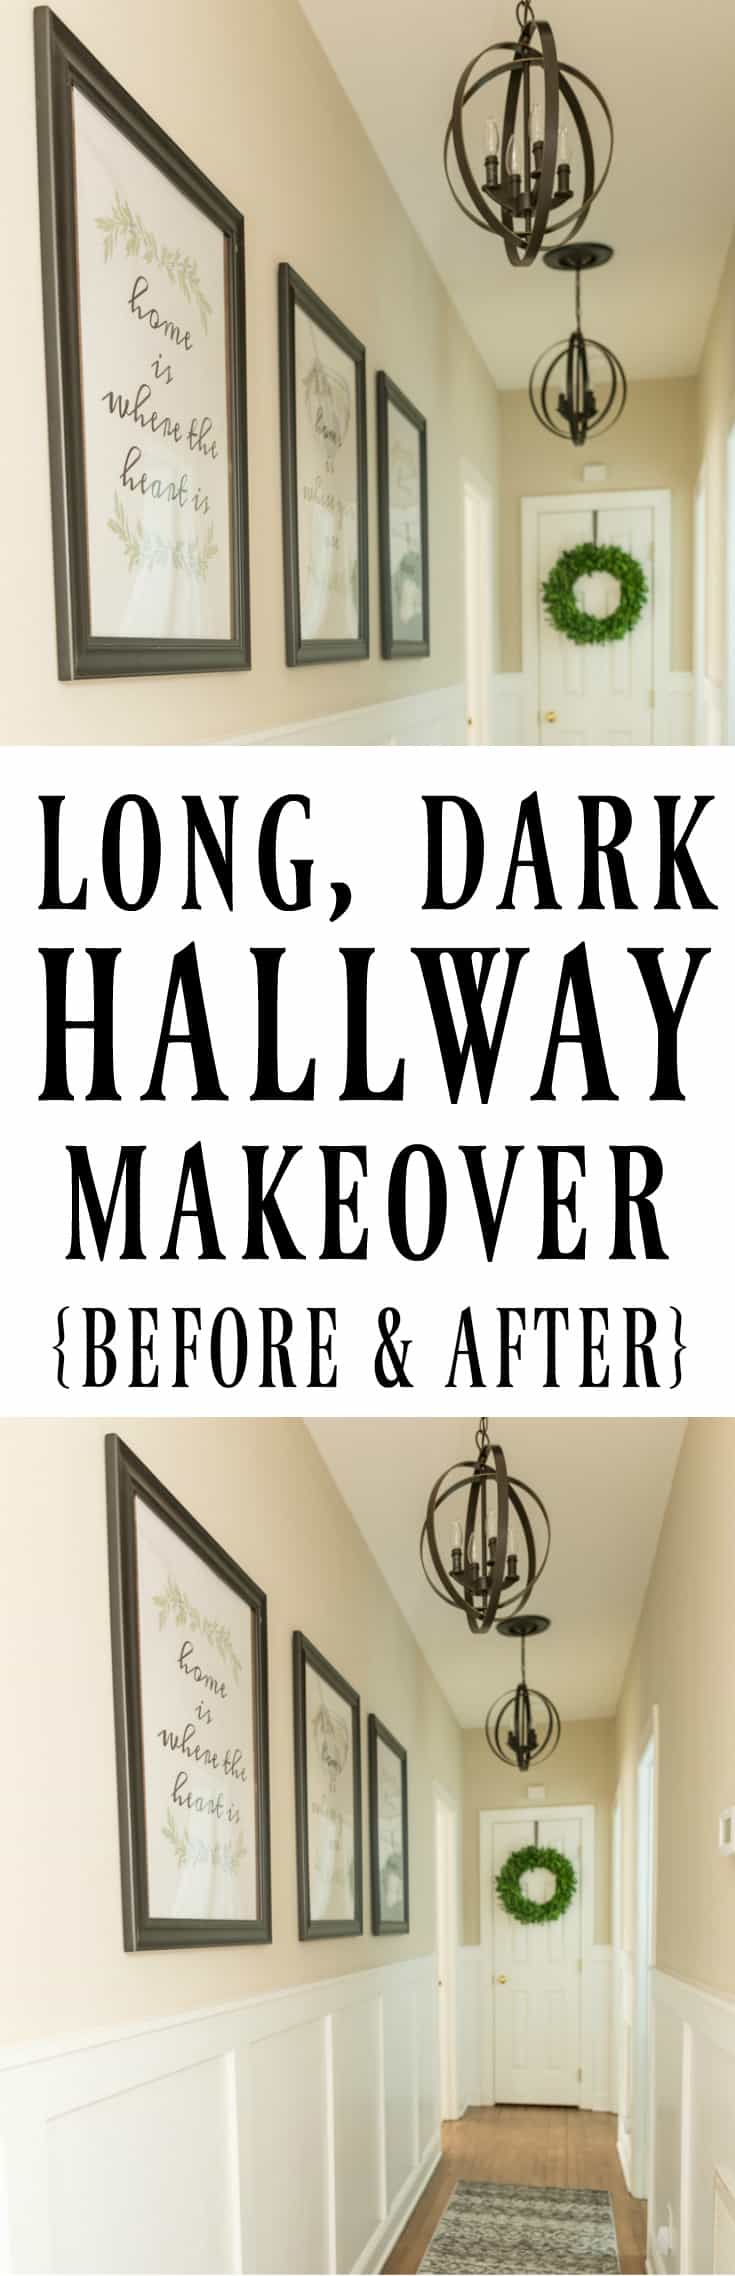 Long, Dark Hallway Makeover Before And After #makeover #hallway #farmhouse